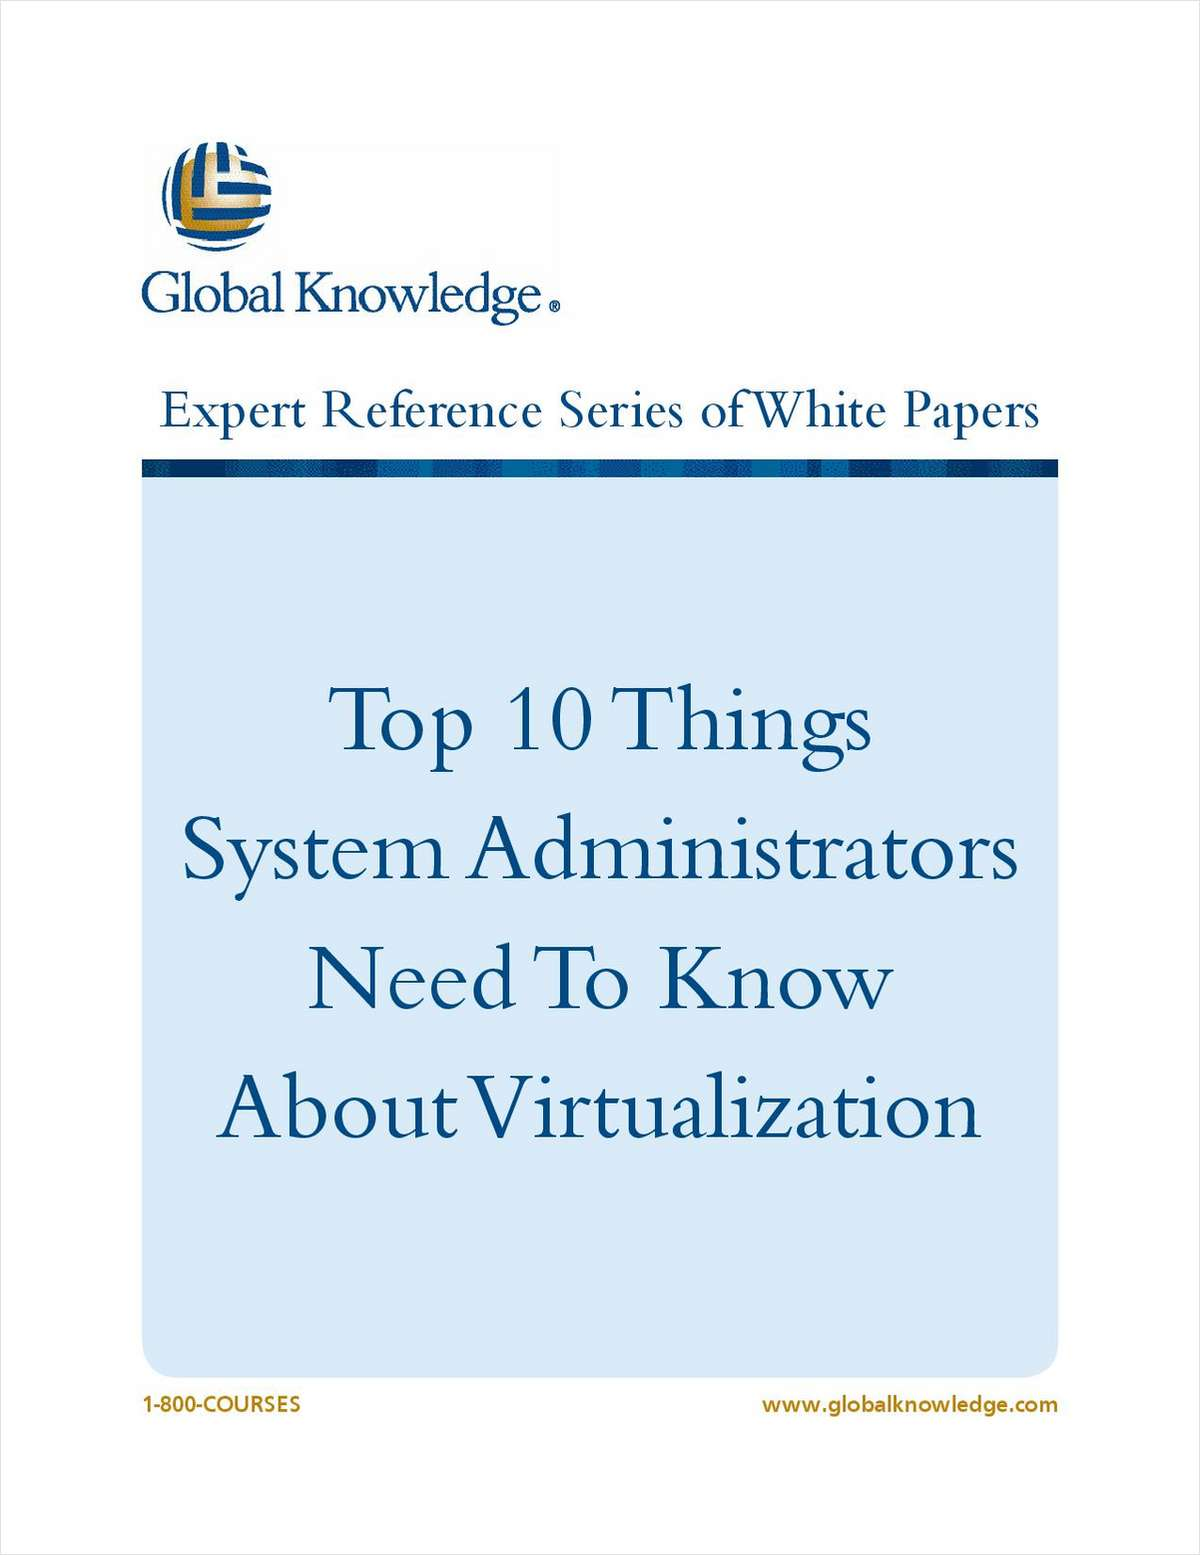 Top 10 Things System Administrators Need to Know About Virtualization